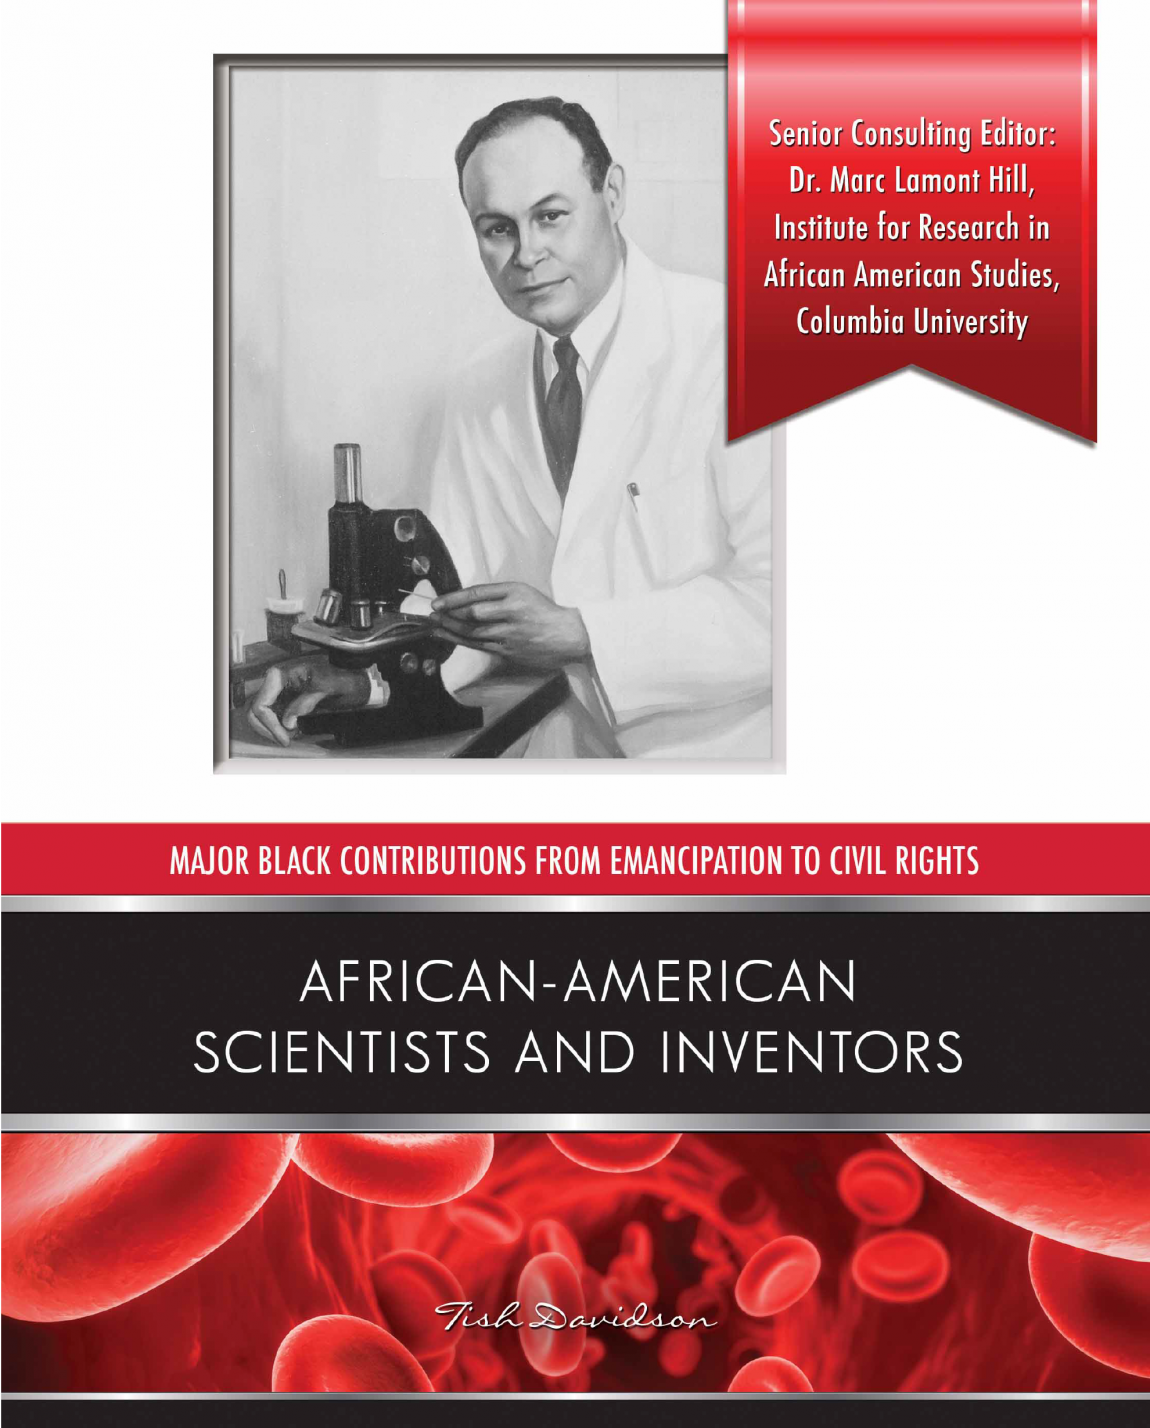 aa-scientists-and-inventors-01.png